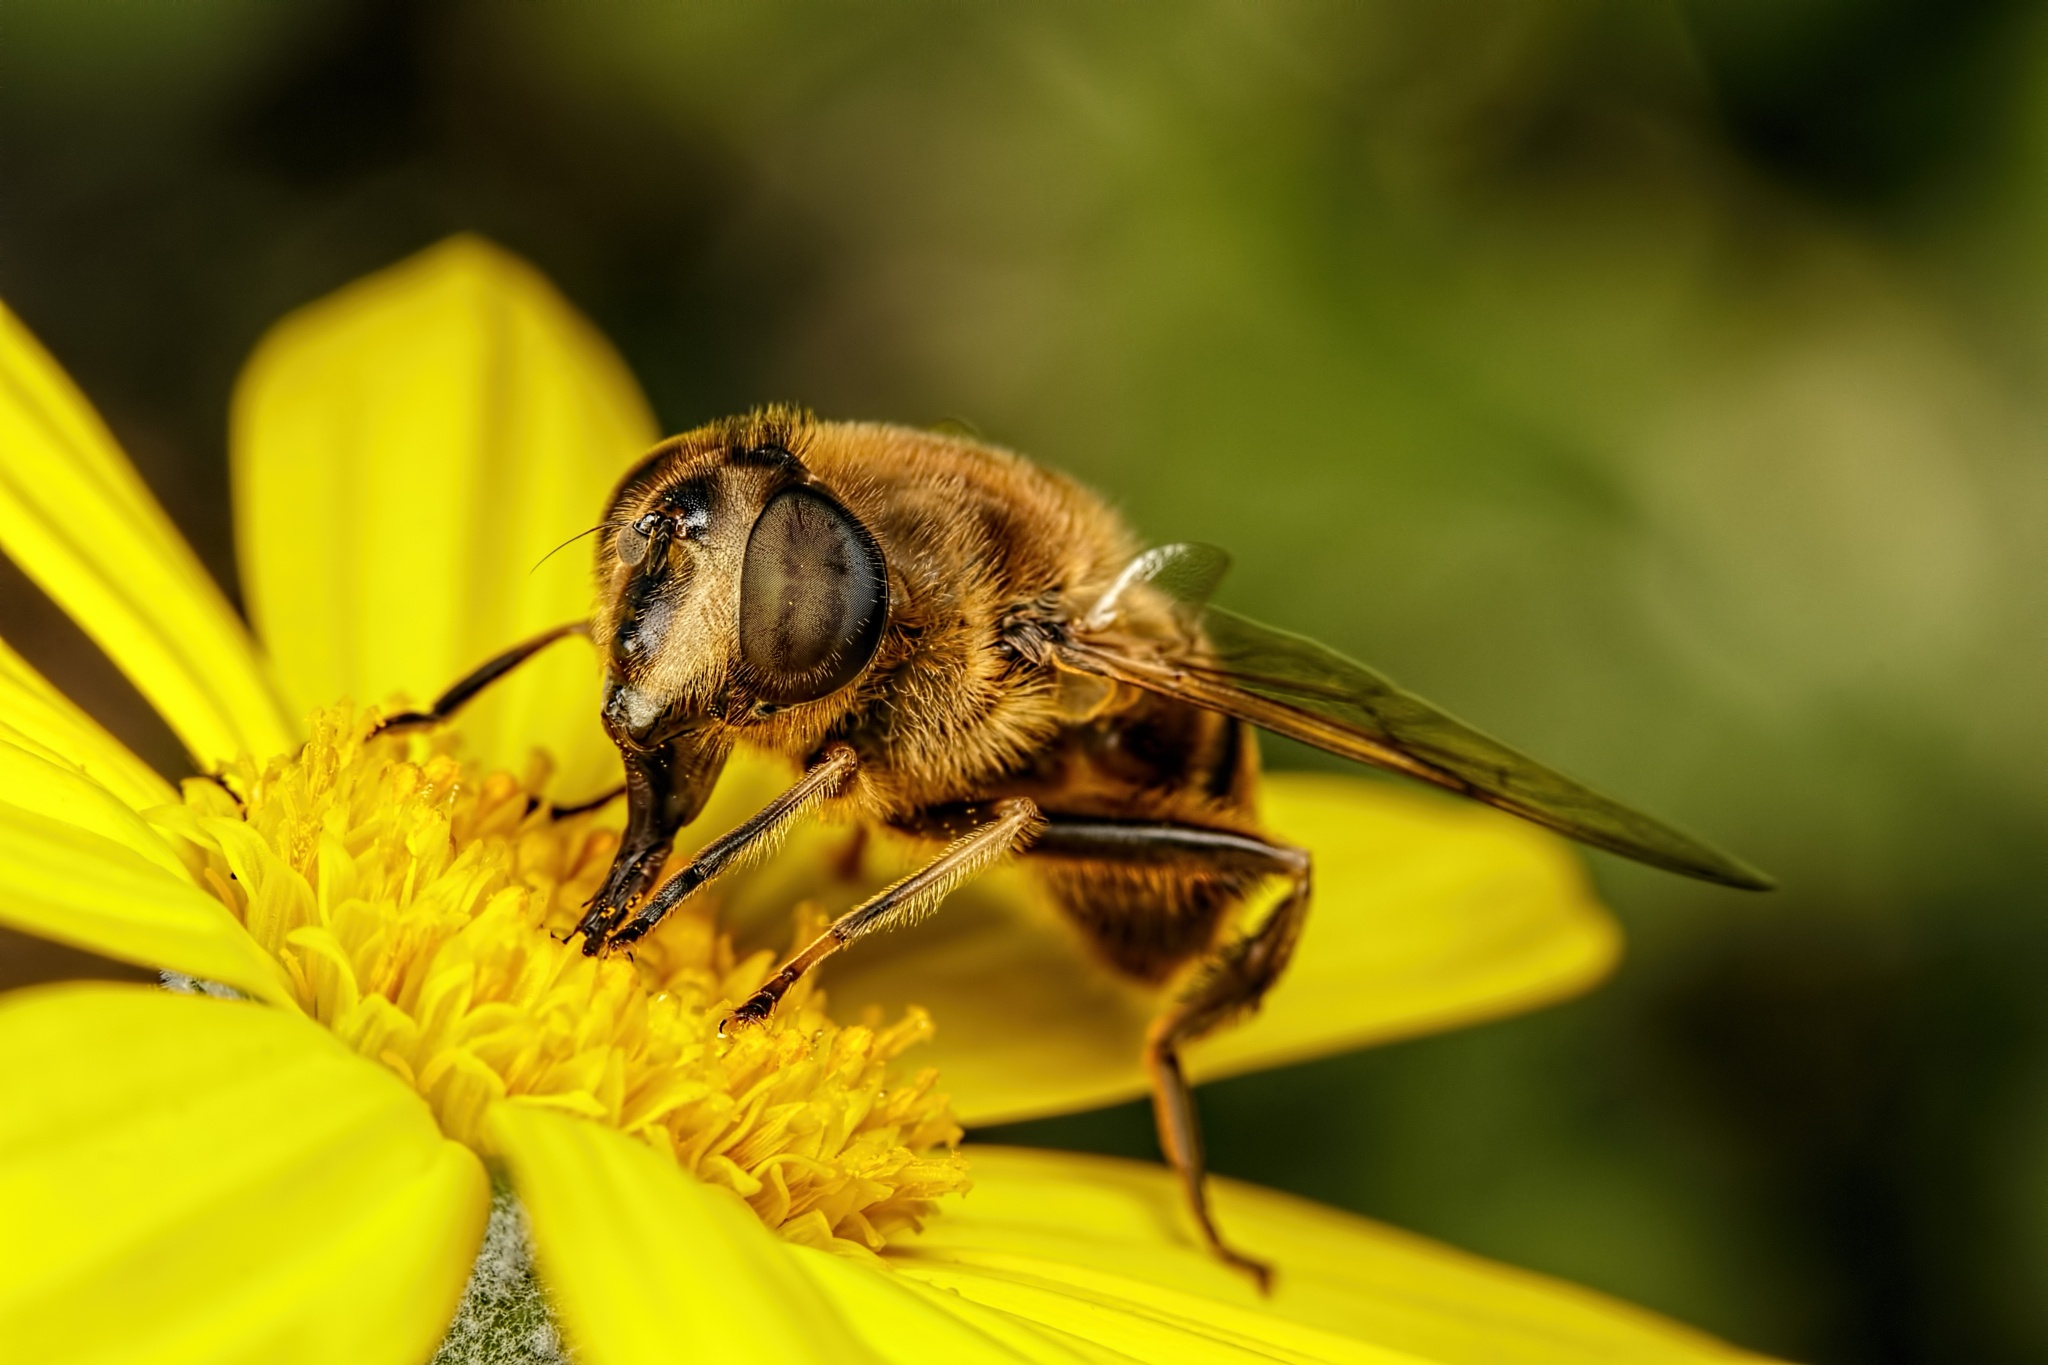 Drone Hoverfly by Dalantech